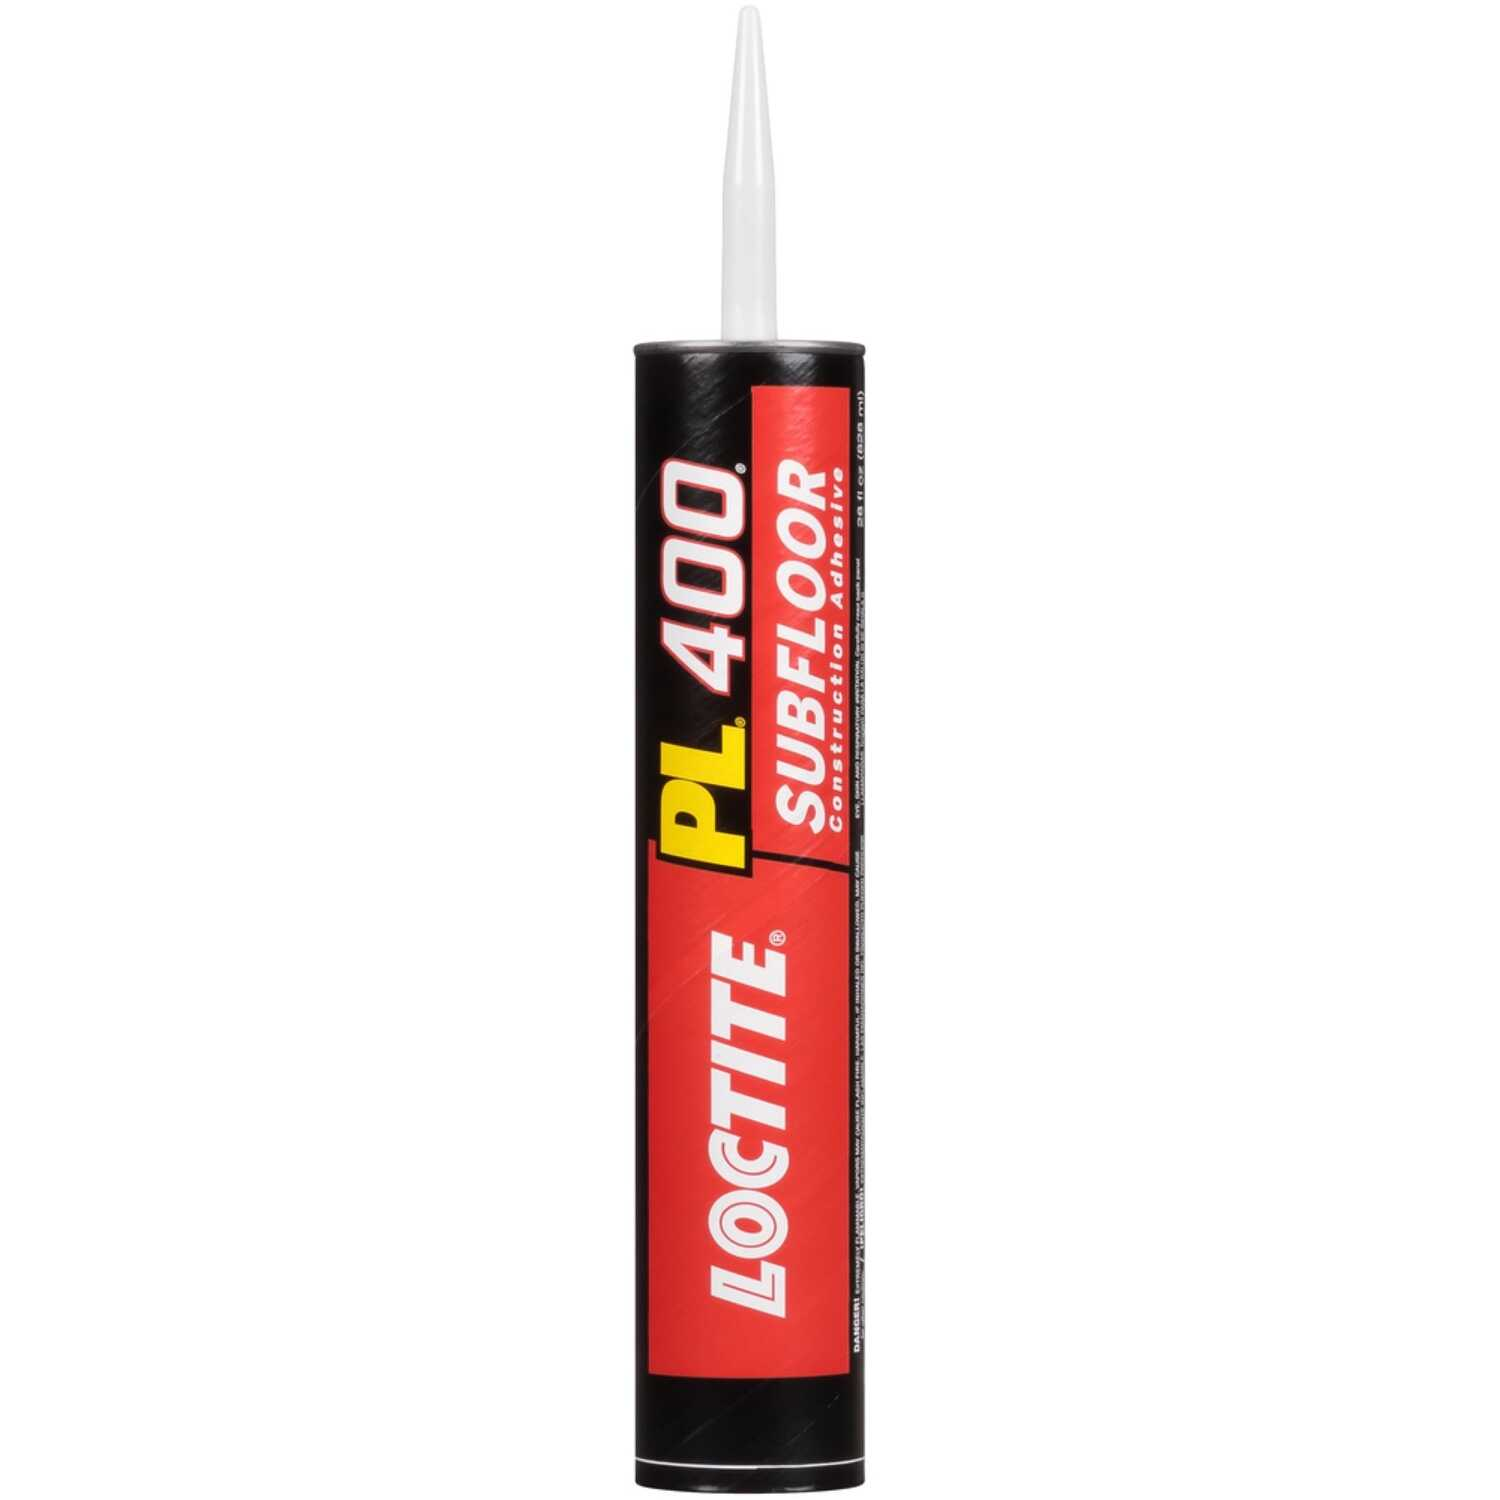 Loctite  PL 400  Synthetic Rubber  Subfloor Construction Adhesive  28 oz.